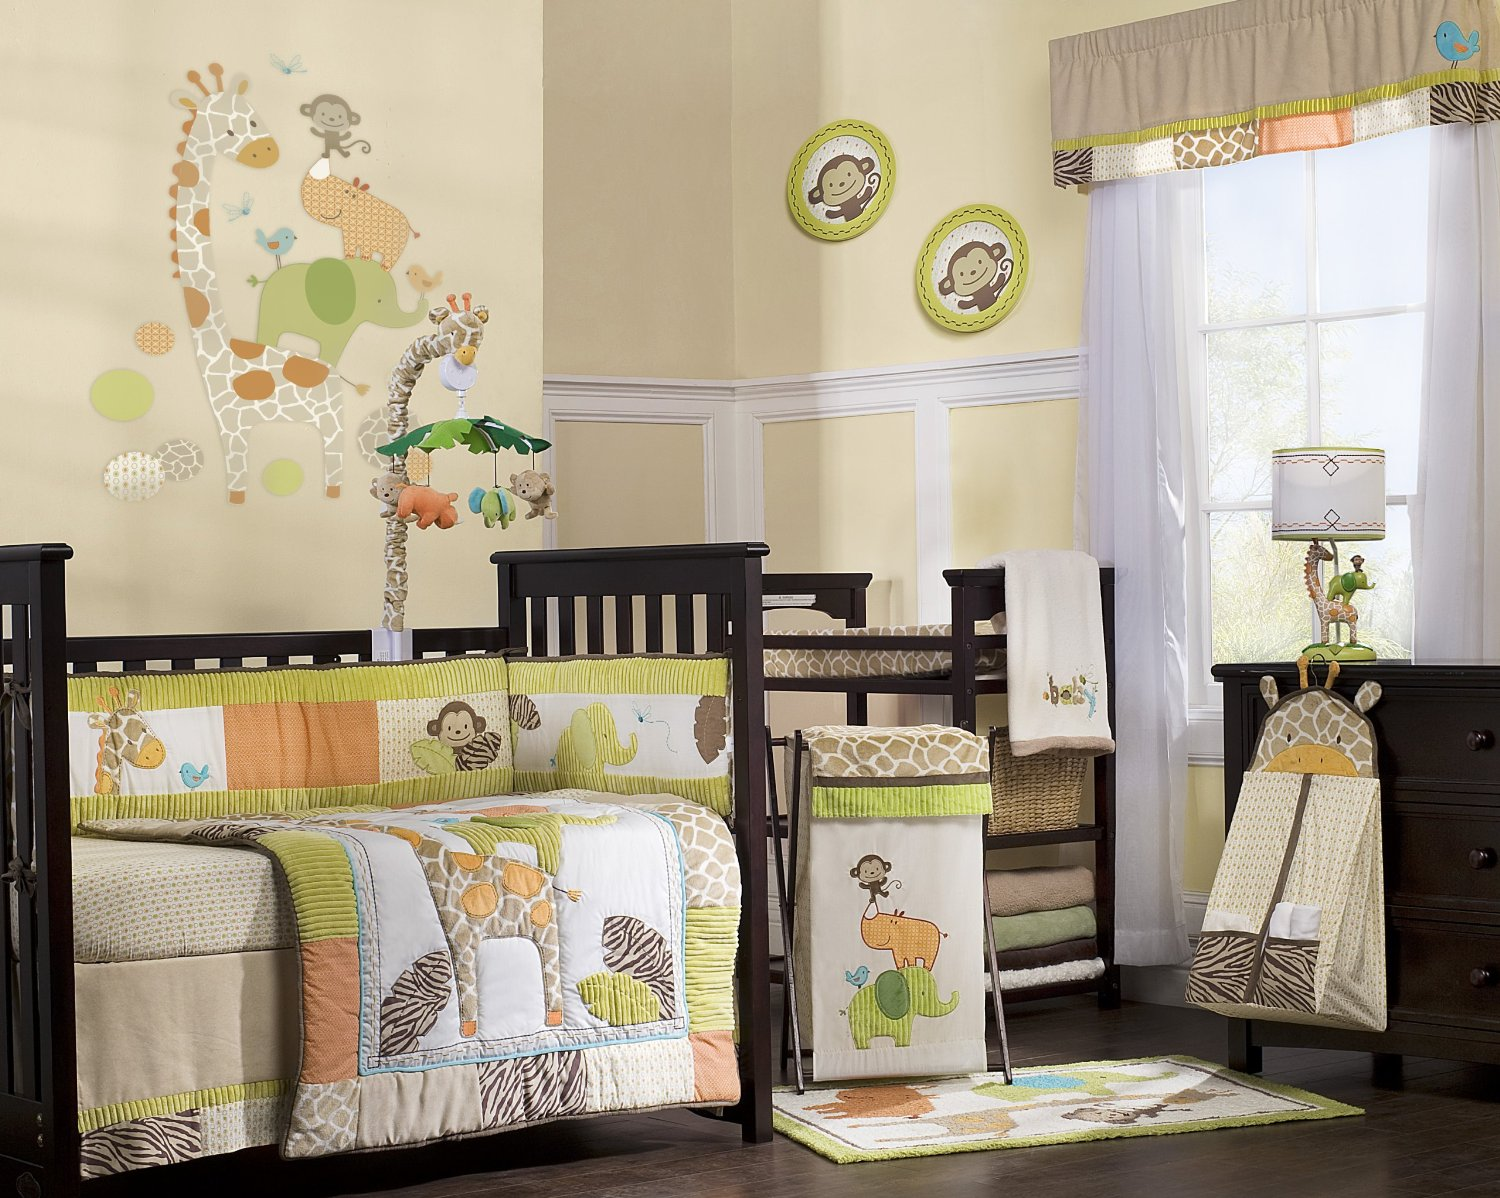 Cute Safari Toddlersu0027 Bedroom Decor Idea Black Painted Wooden Crib With  Safari Themed Quilt